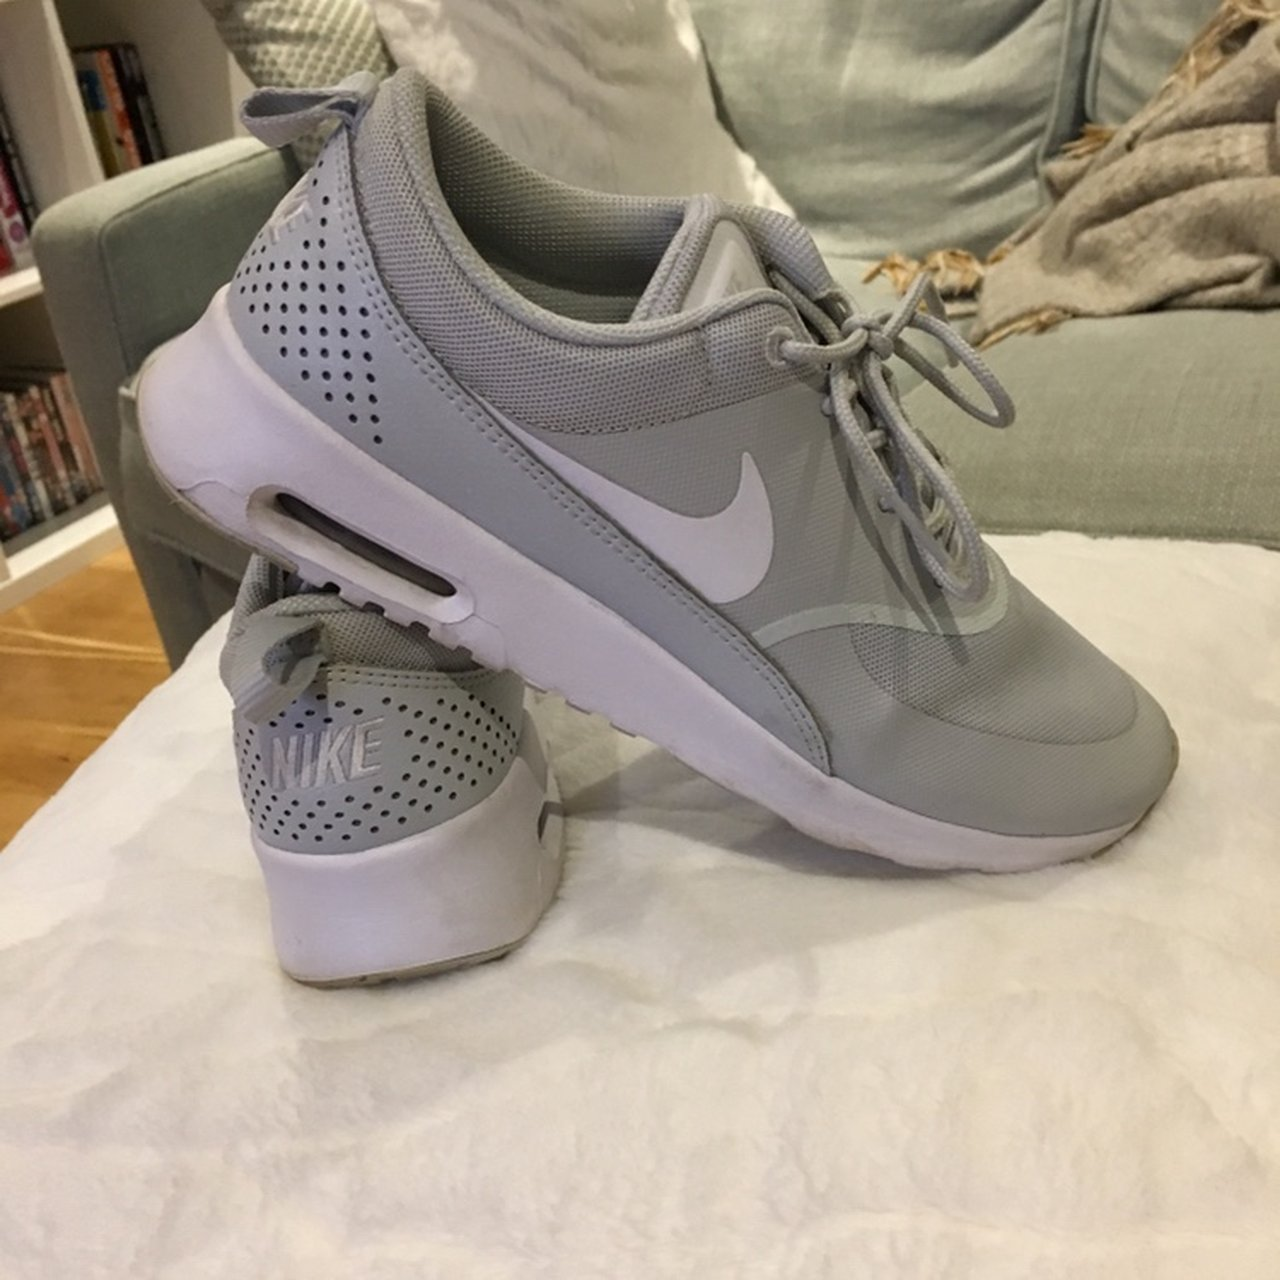 02ce9756453 Grey ladies Nike trainers worn a couple of times. Size 6.5. - Depop